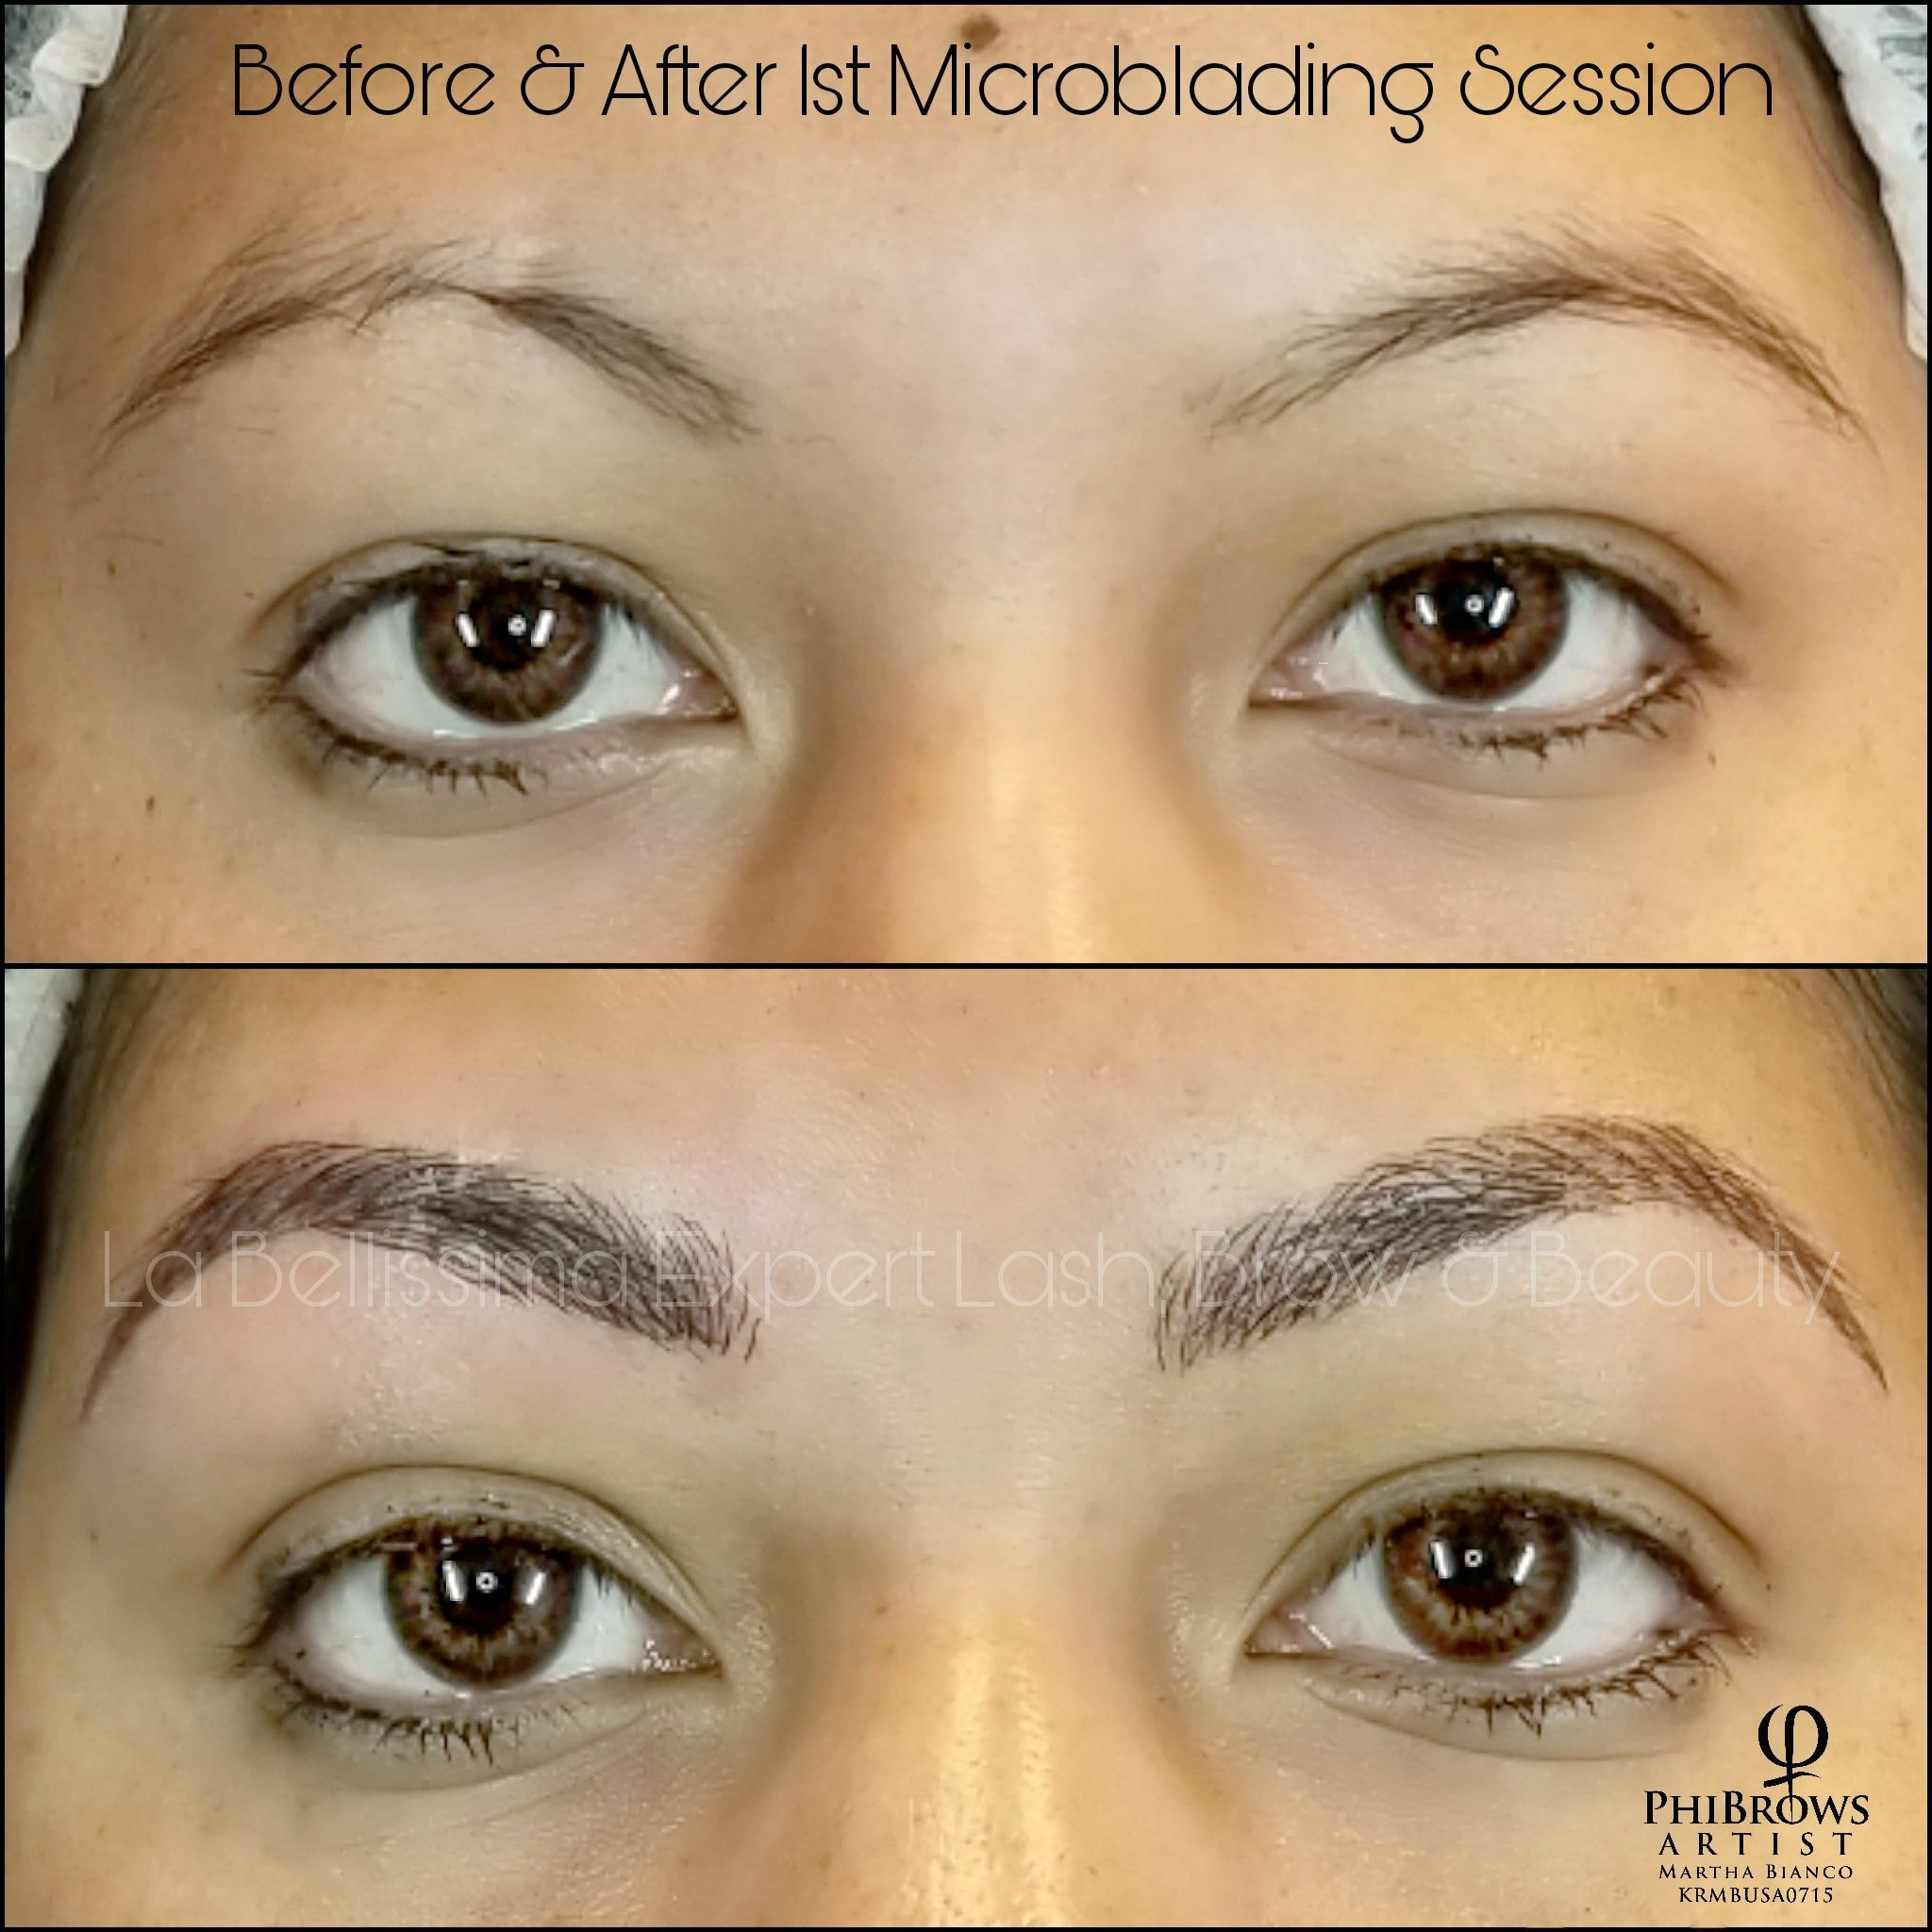 I See Many Clients Who Have A Scar Or Other Injury On Their Brow